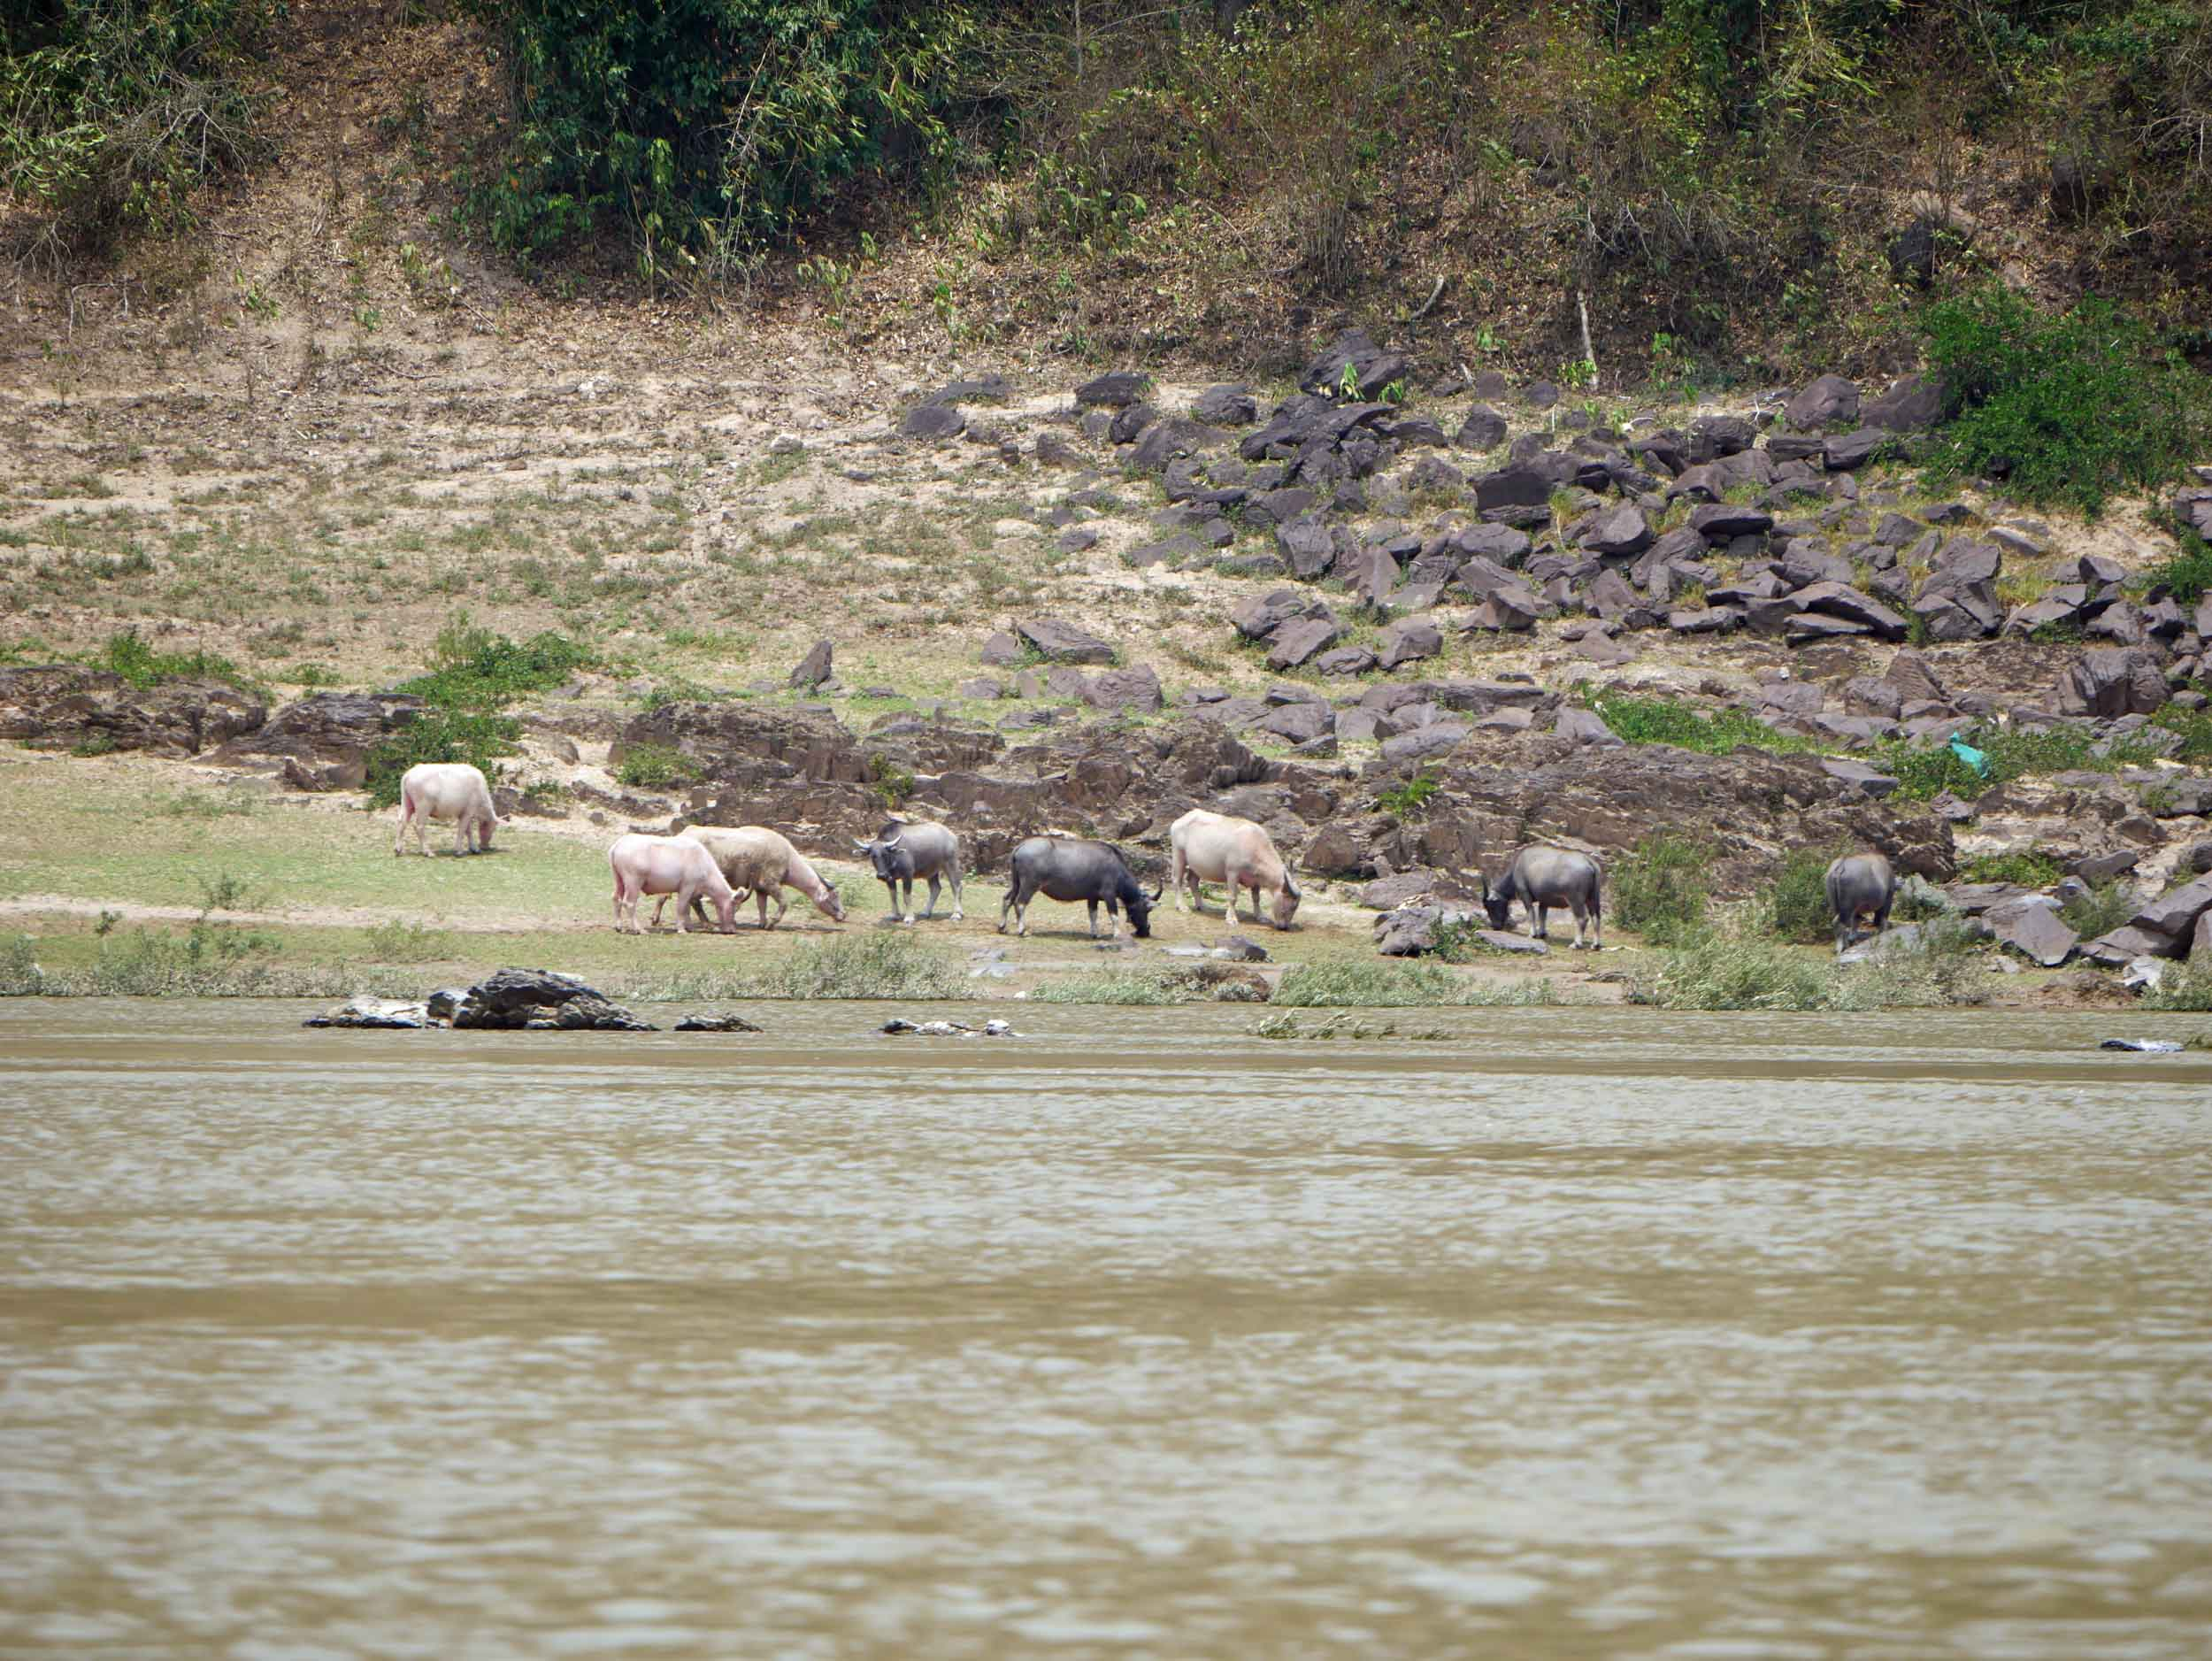 We saw lots of water buffalo along the river, mostly lying on the shores or submerged in the water to keep cool.